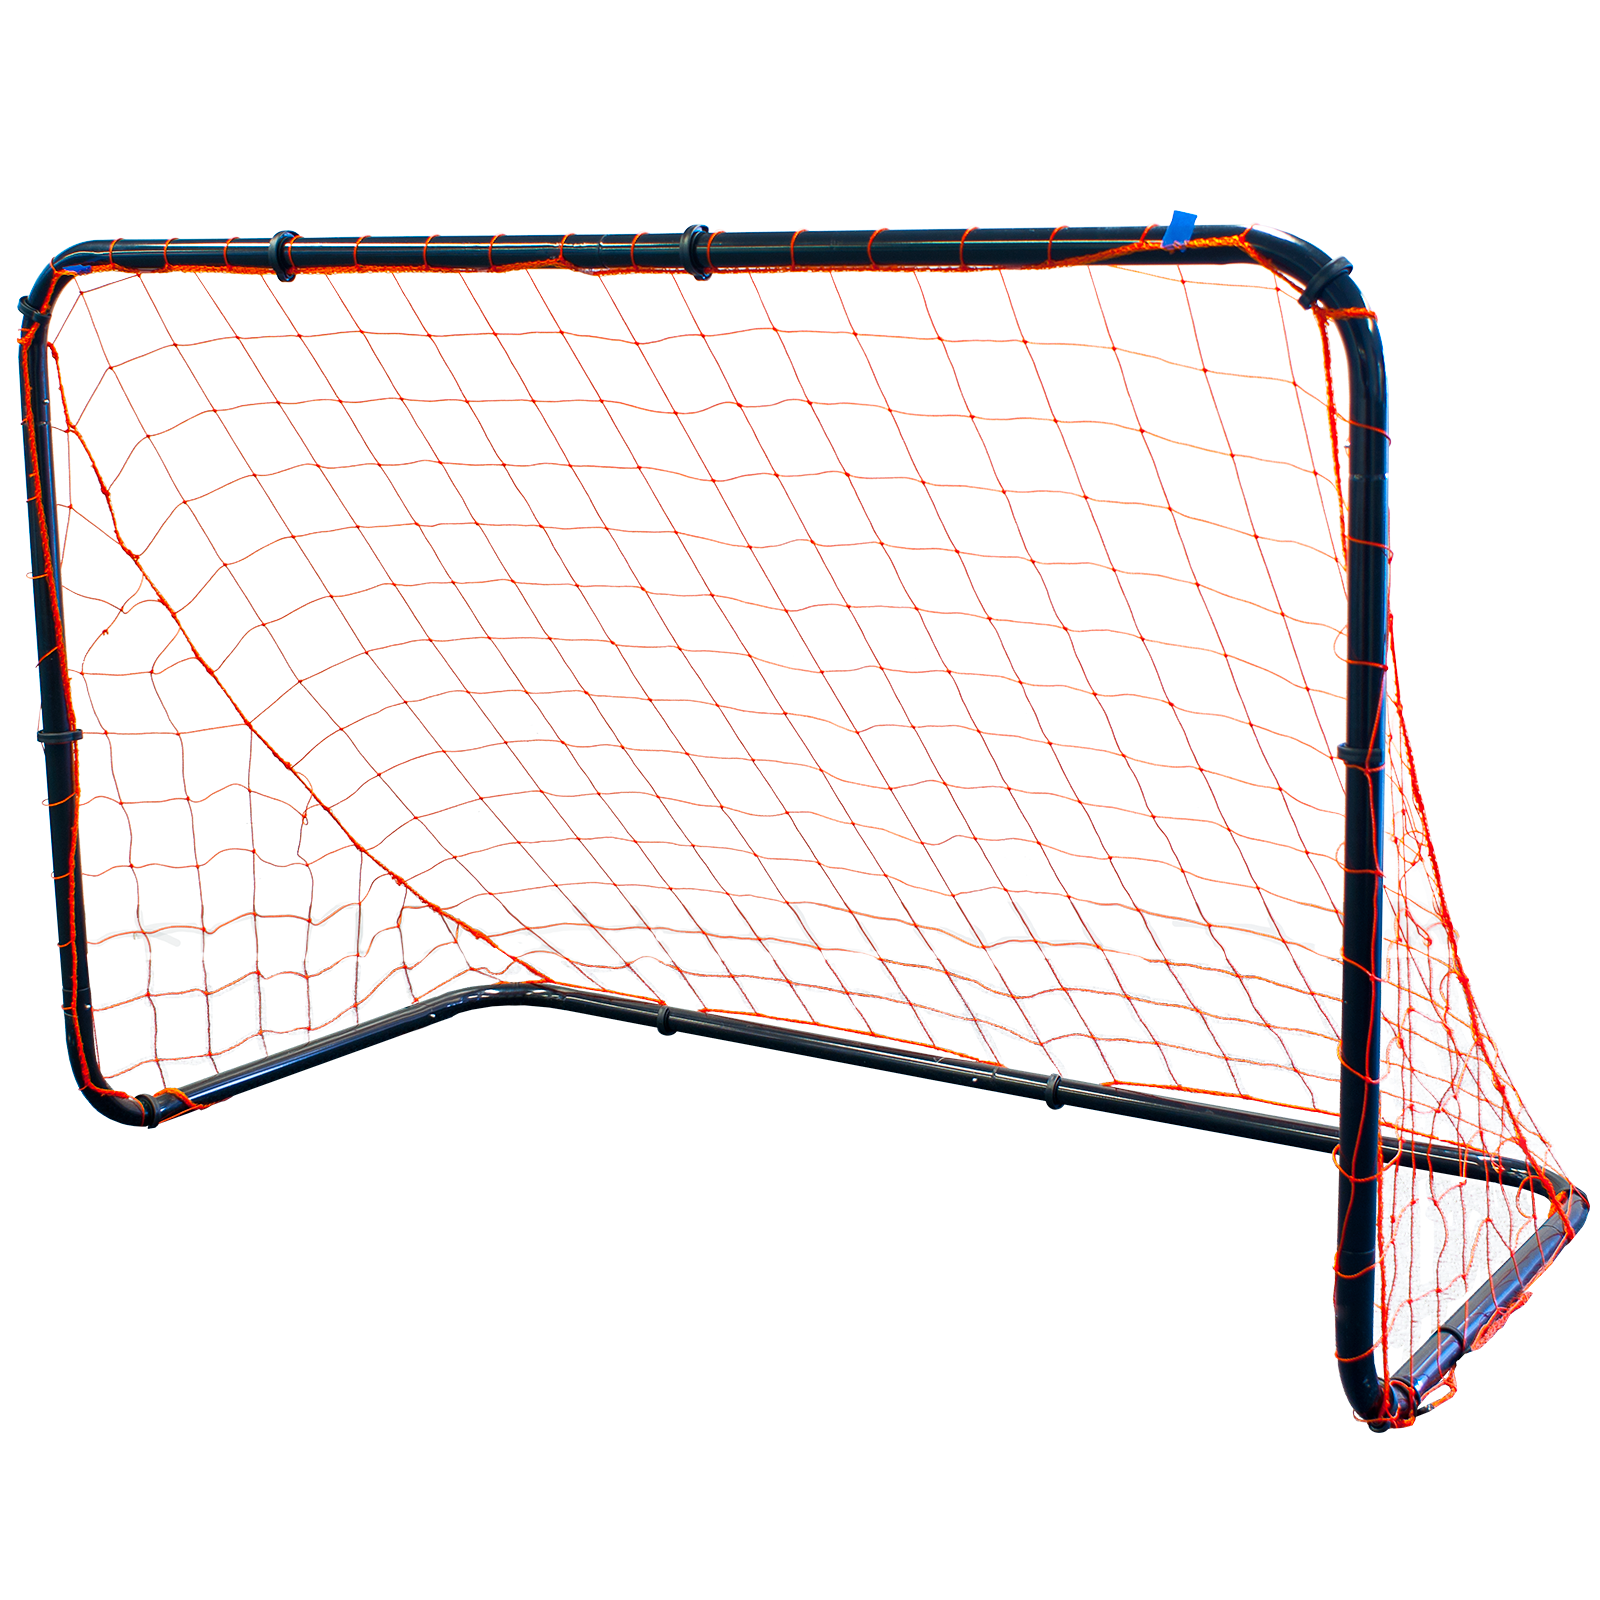 Park and Sports Black Steel Sports Goal